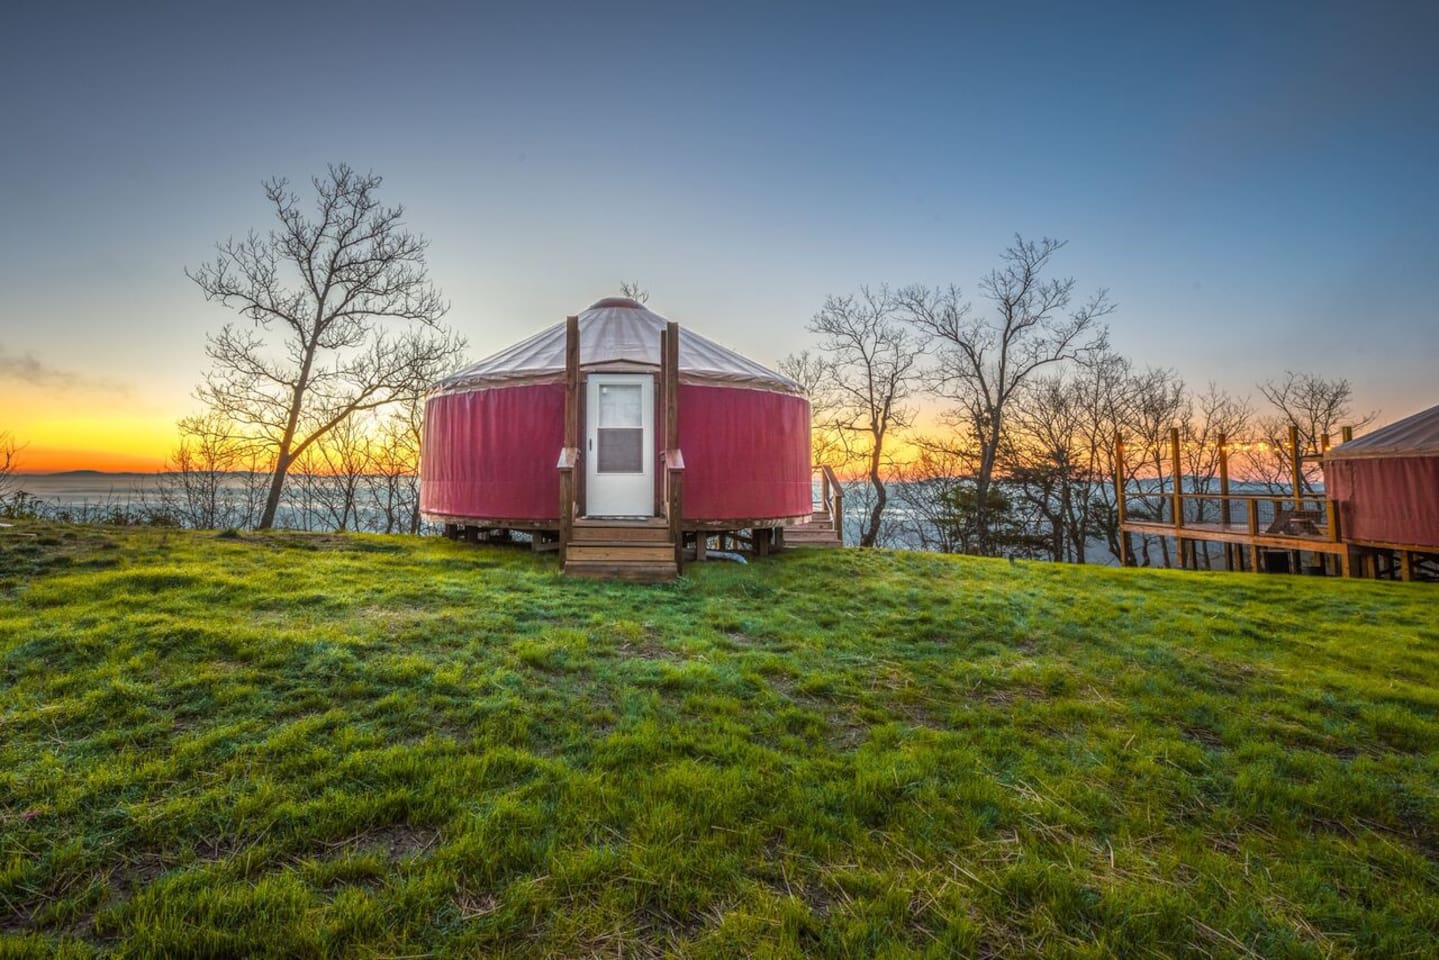 The average cost to stay in this yurt is $120